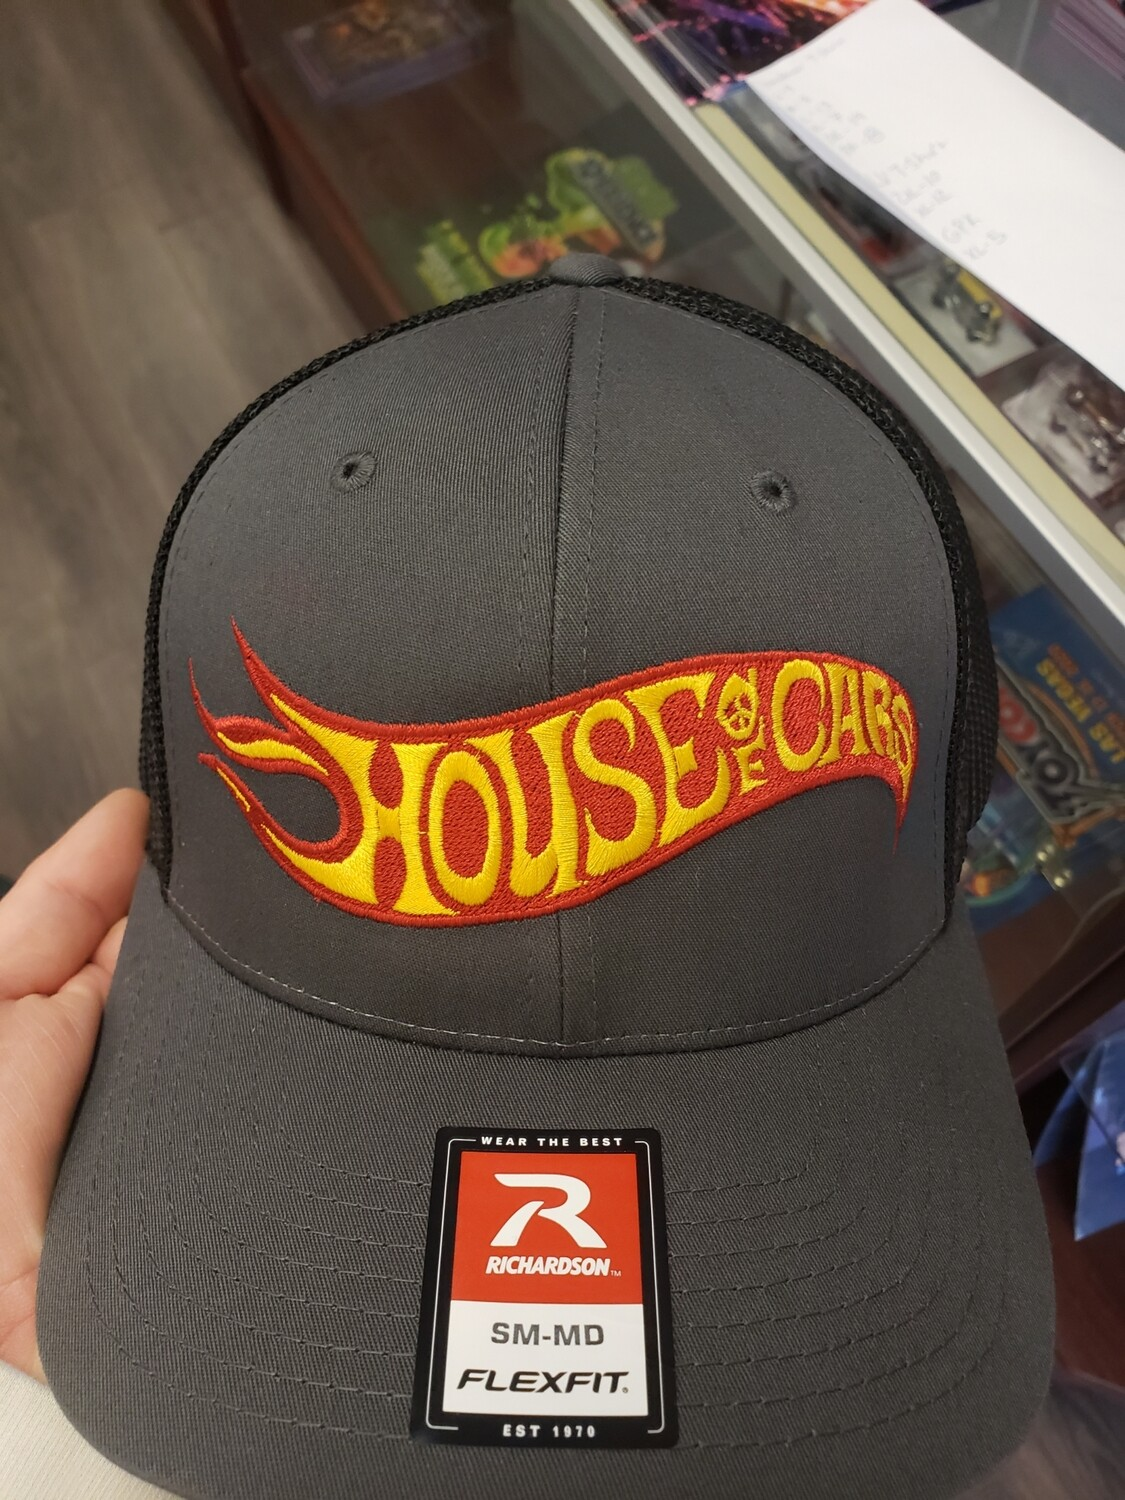 House of Cars Flexfit Hat Size S/M